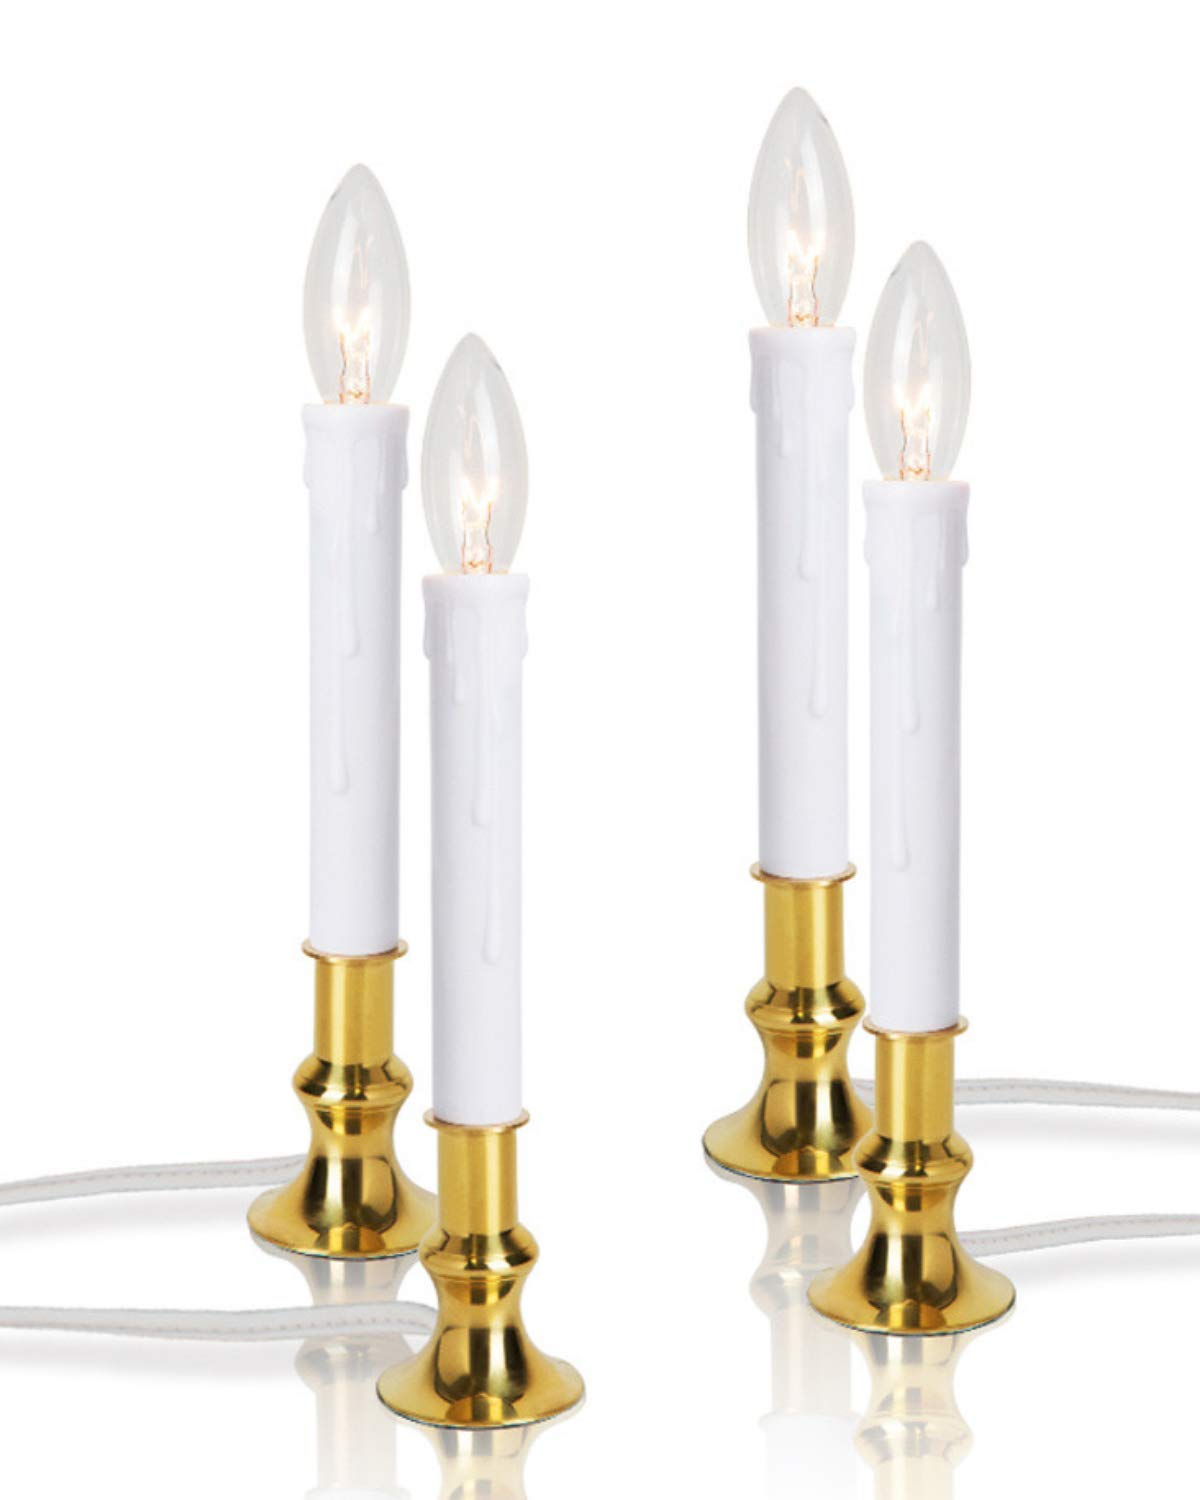 New Ideal Lights Set of 4 Window Candle Electric Daily Timer, Real Brass Base with Extra Weight